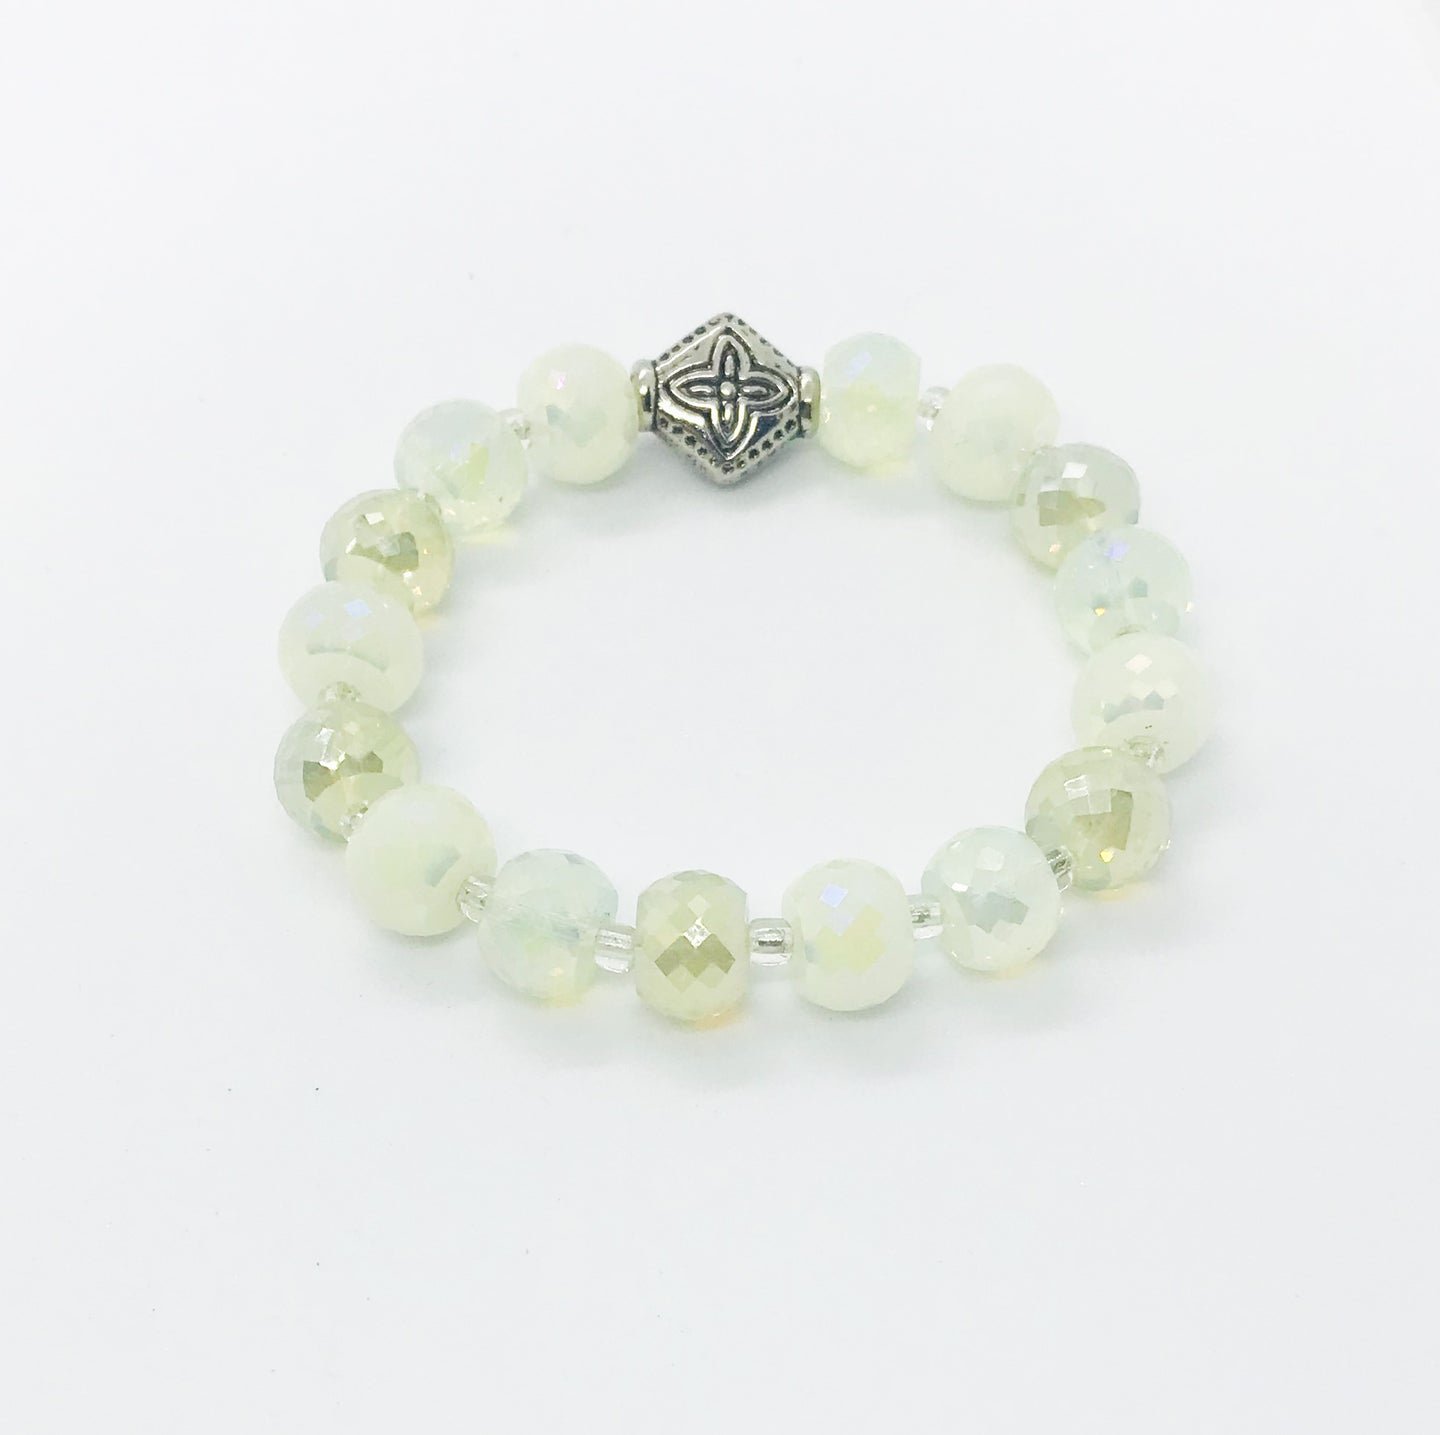 Glass Bead Stretchy Bracelet - B873